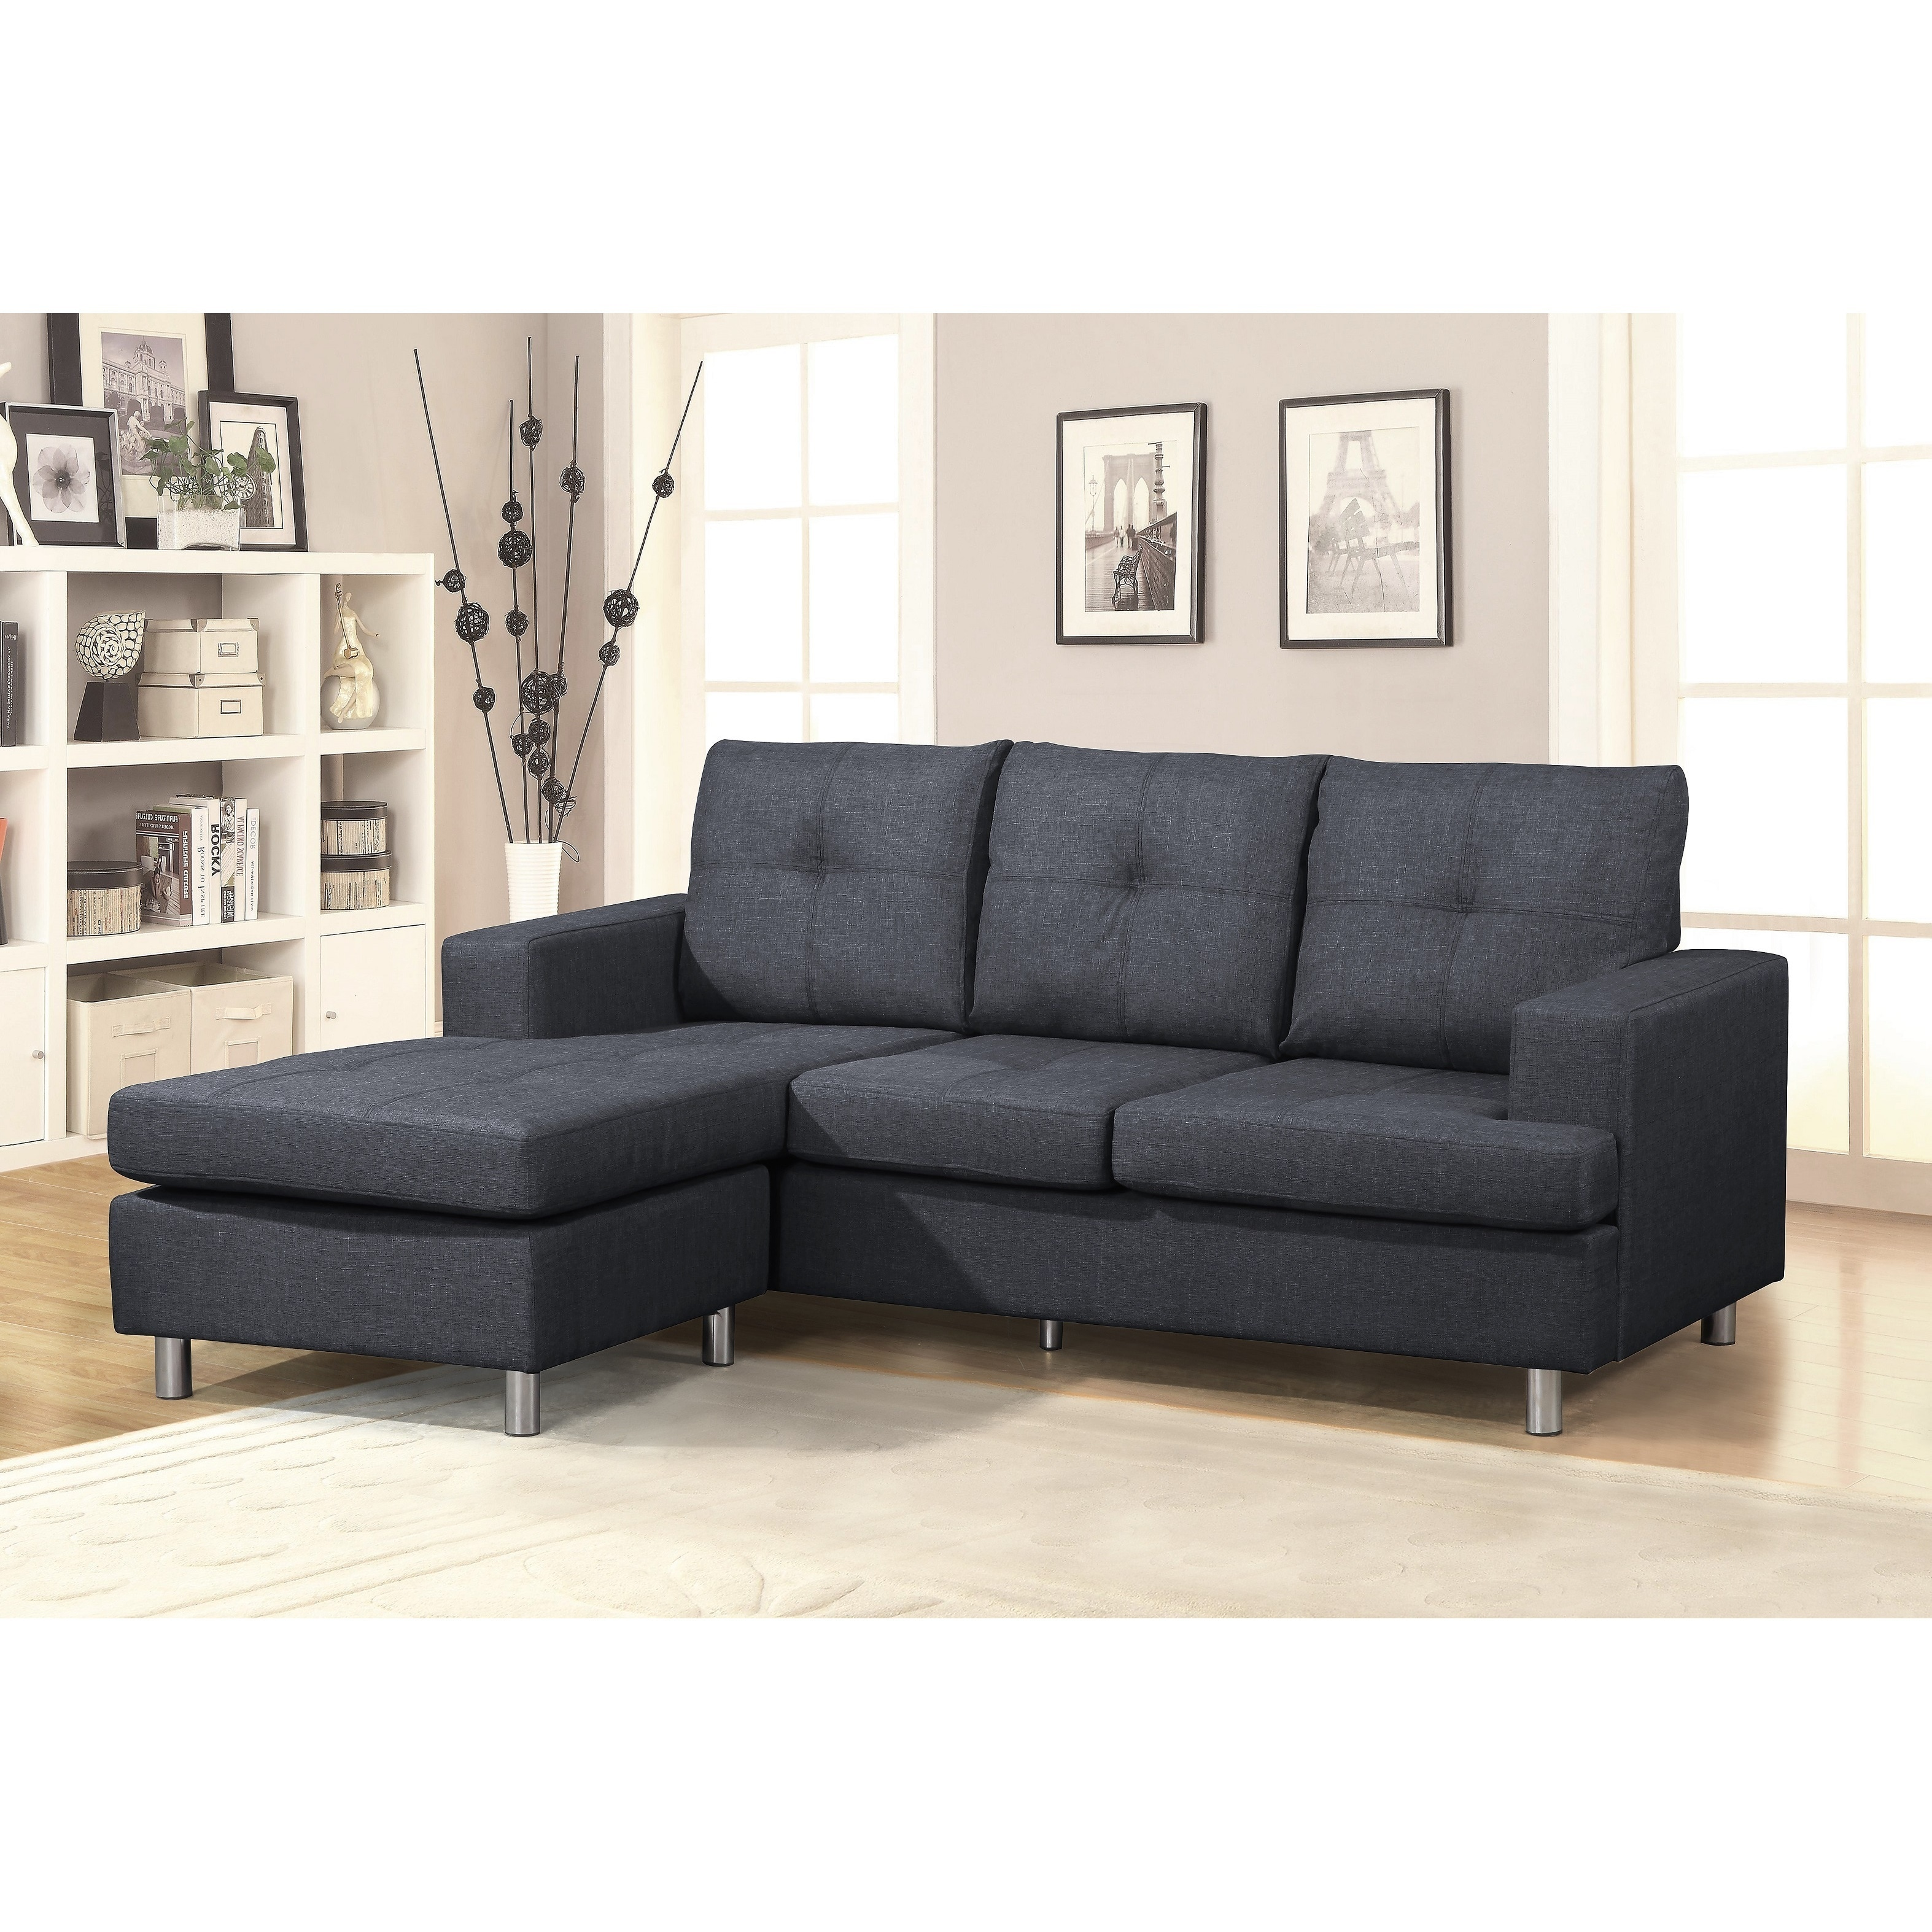 Shop Us Pride Furniture Modern Reversible Chaise Sectional Sofa On